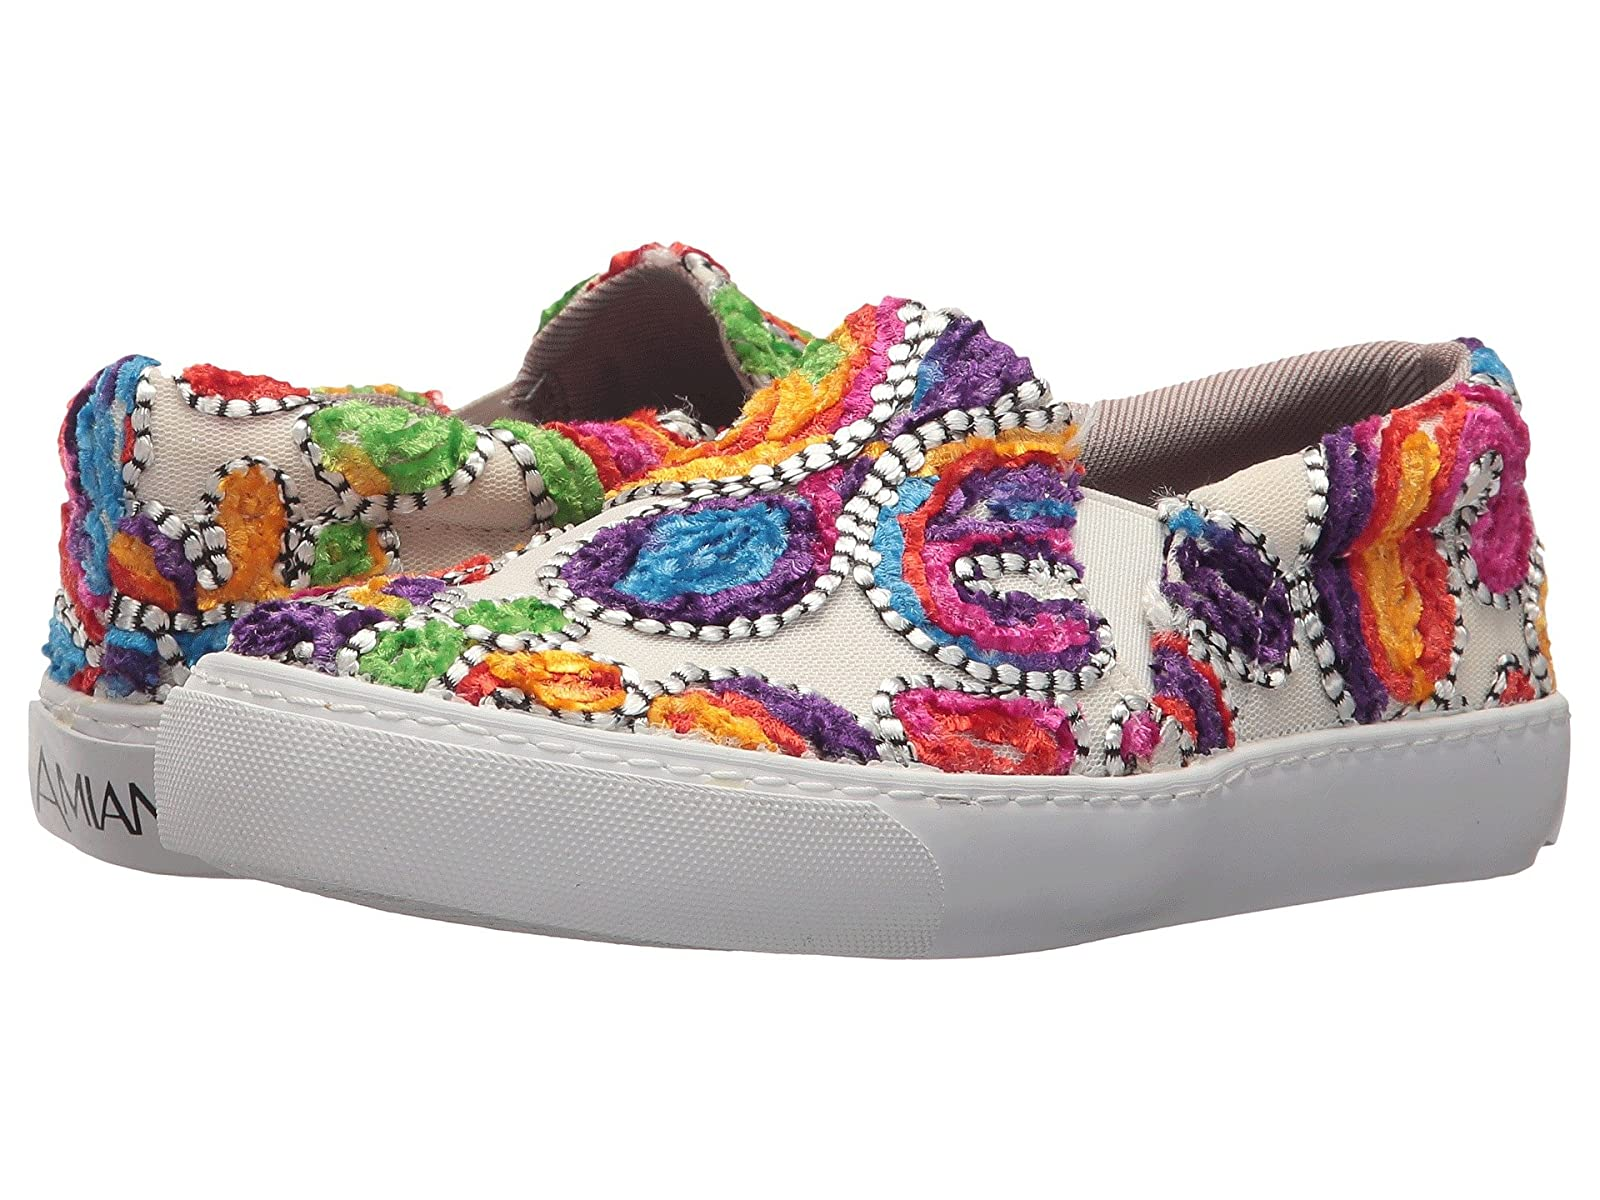 Amiana 15-A5327 (Little Kid/Big Kid/Adult)Atmospheric grades have affordable shoes